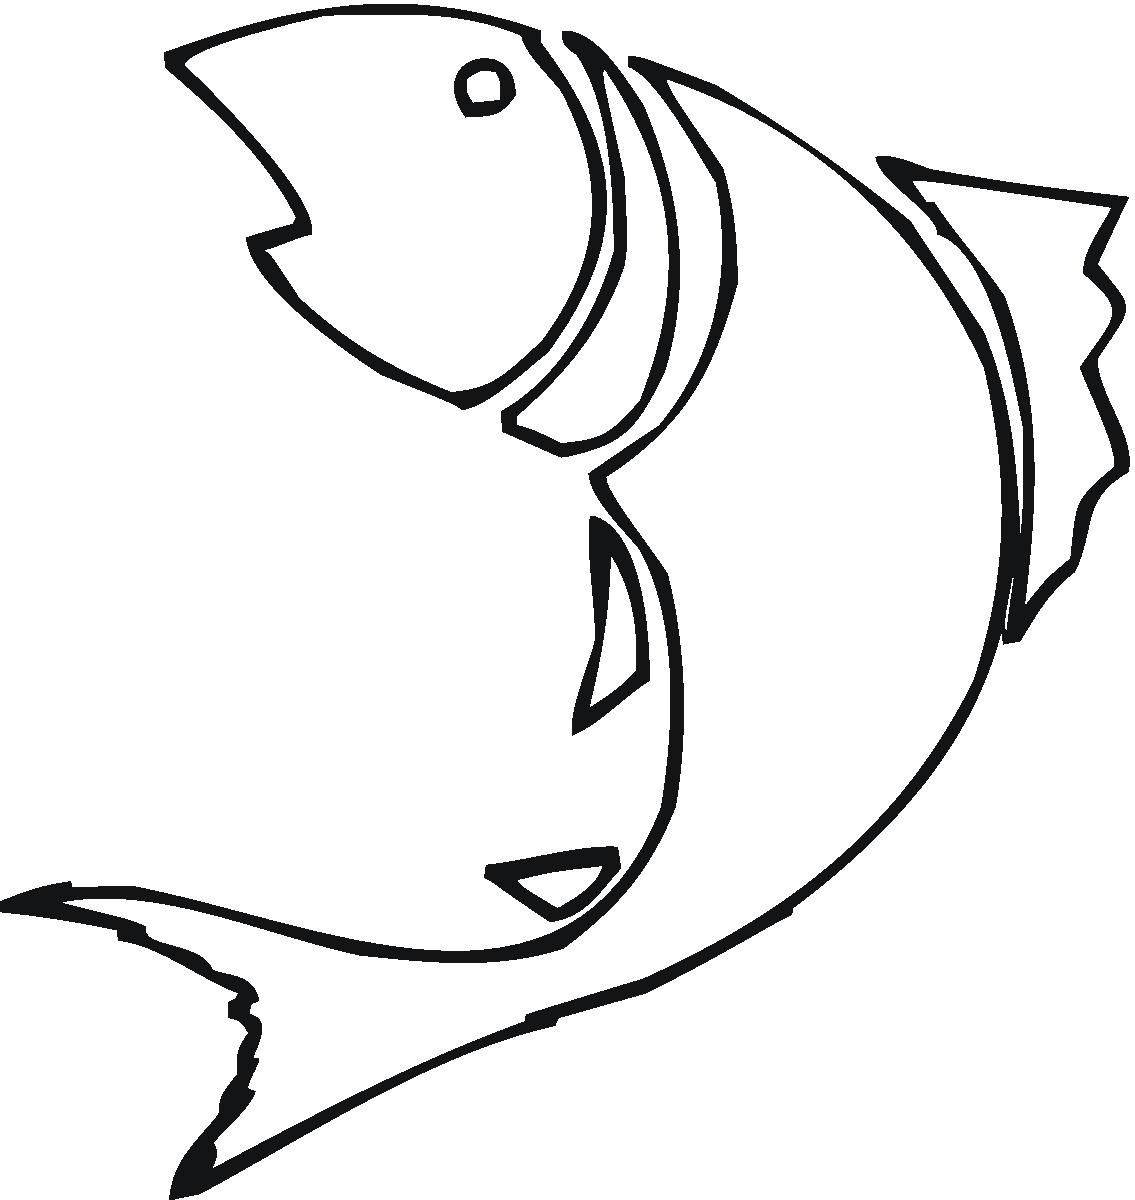 1135x1200 Fish Drawing Outline